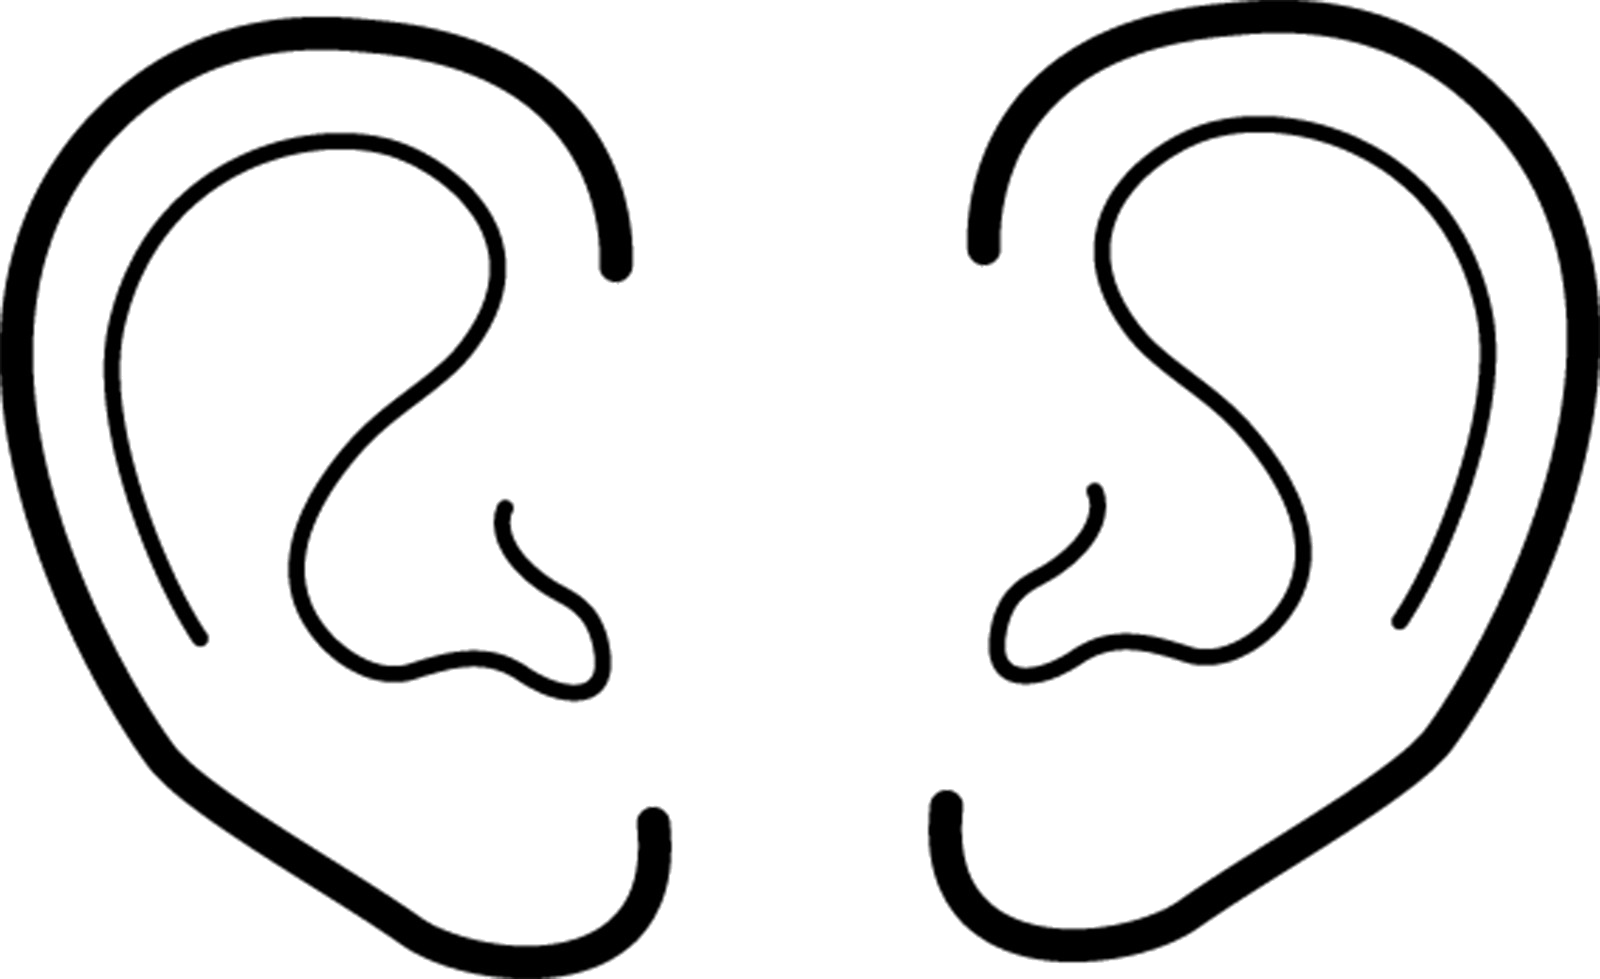 Black and white clipart ear graphic download Ear Collection Of Ears Clipart Black And White For Kids High ... graphic download